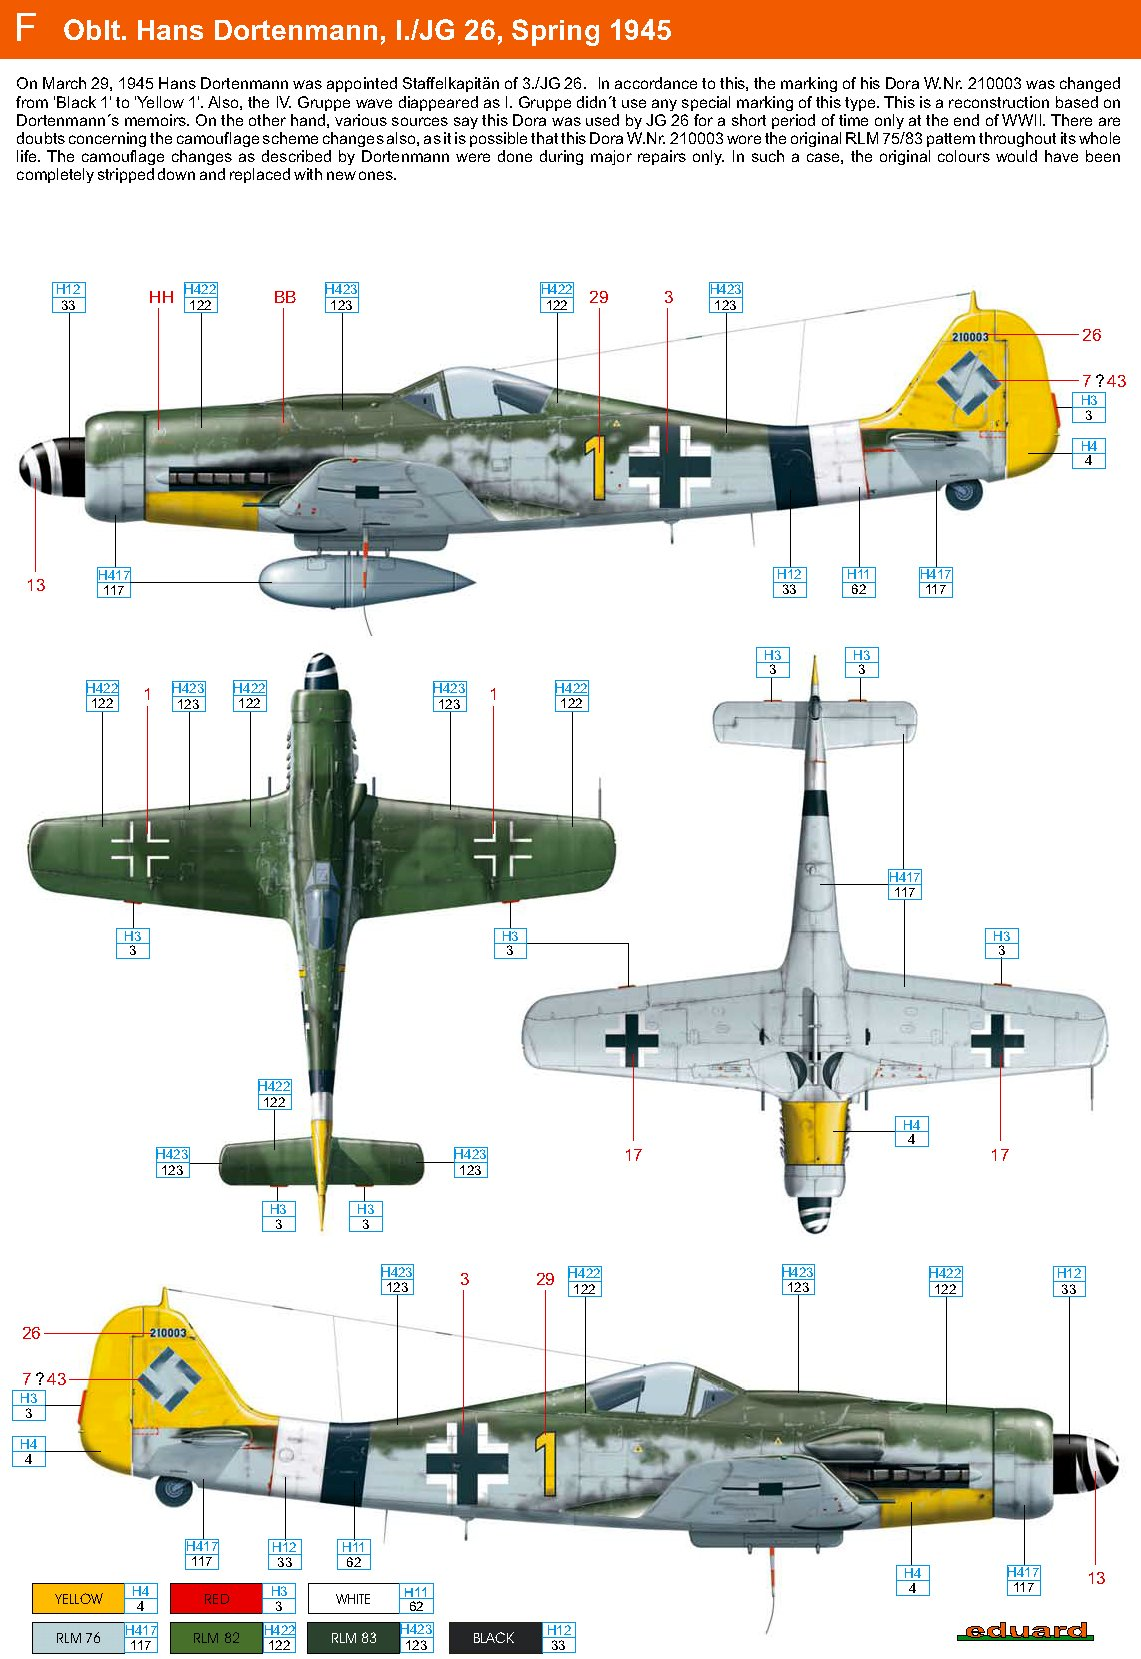 Artwork-Focke-Wulf-Fw-190D9-3.JG26-Yellow-1-Hans-Dortenmann-Germany-1945-0B.jpg